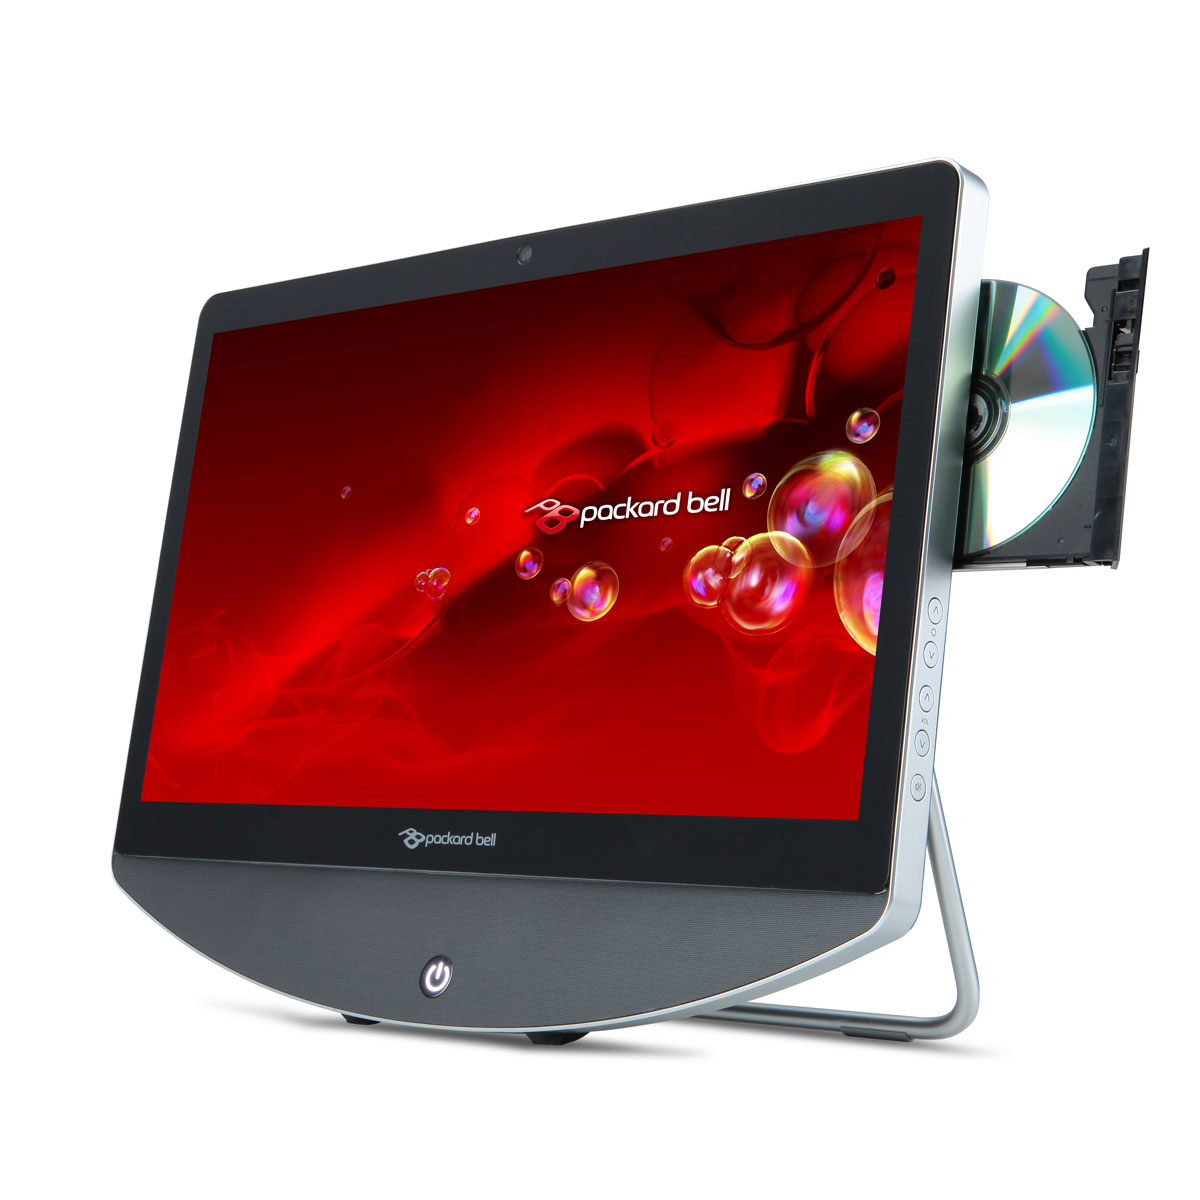 packard bell onetwo s a24g1tu01 pc de bureau packard bell sur ldlc. Black Bedroom Furniture Sets. Home Design Ideas